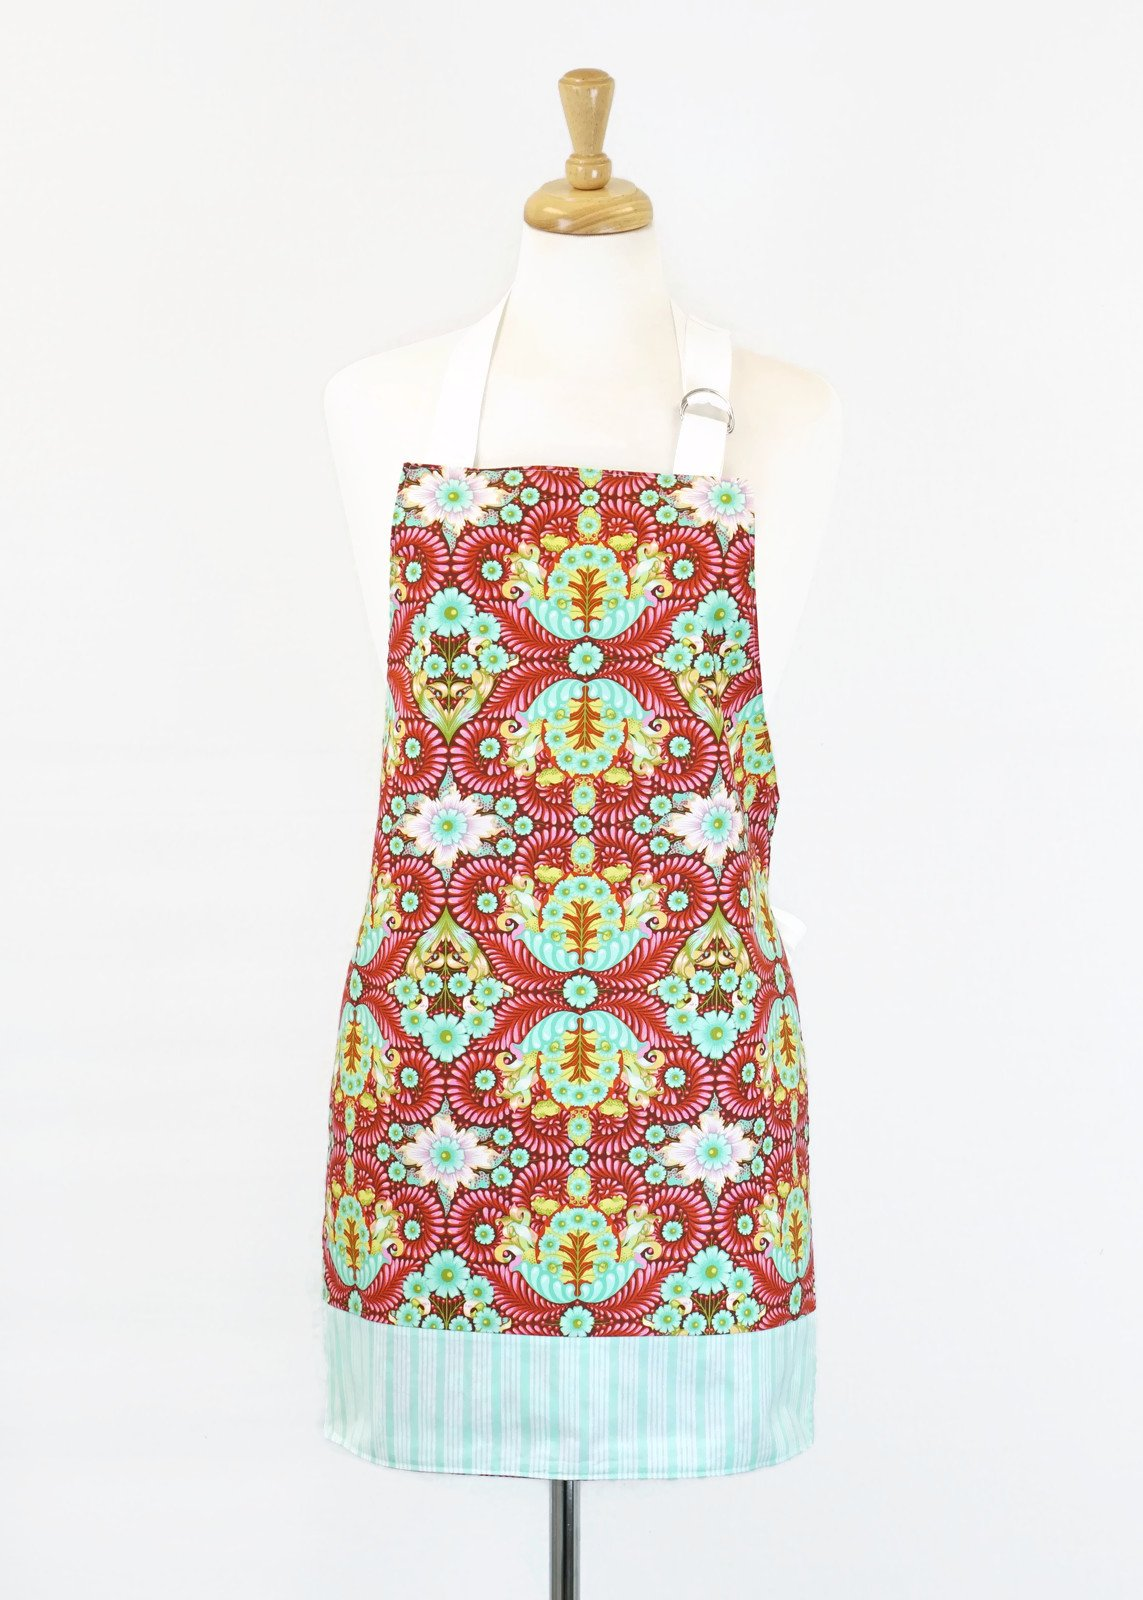 Women's Apron - Tula Pink Turtles